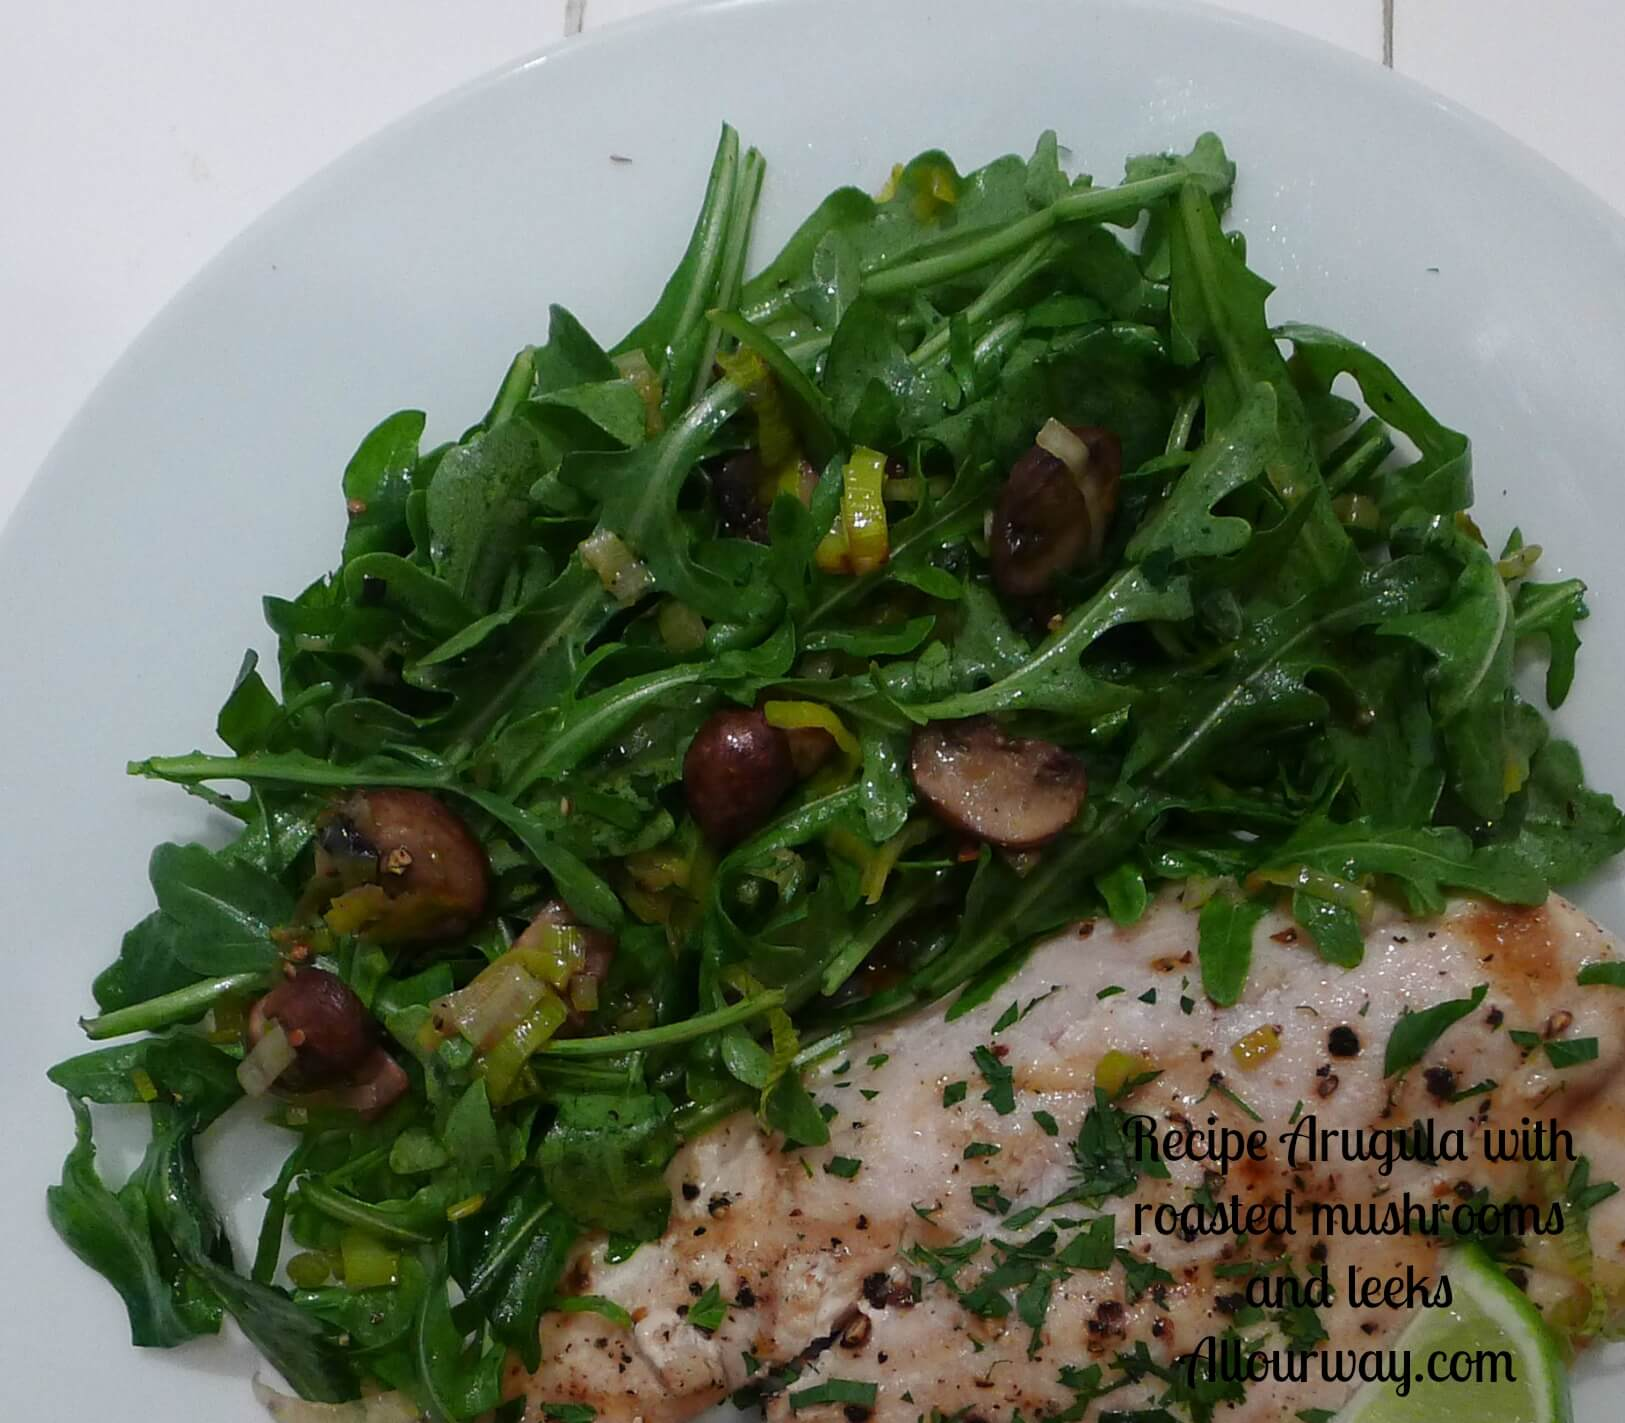 Baby Arugula Tossed With Roasted Mushrooms and Leeks